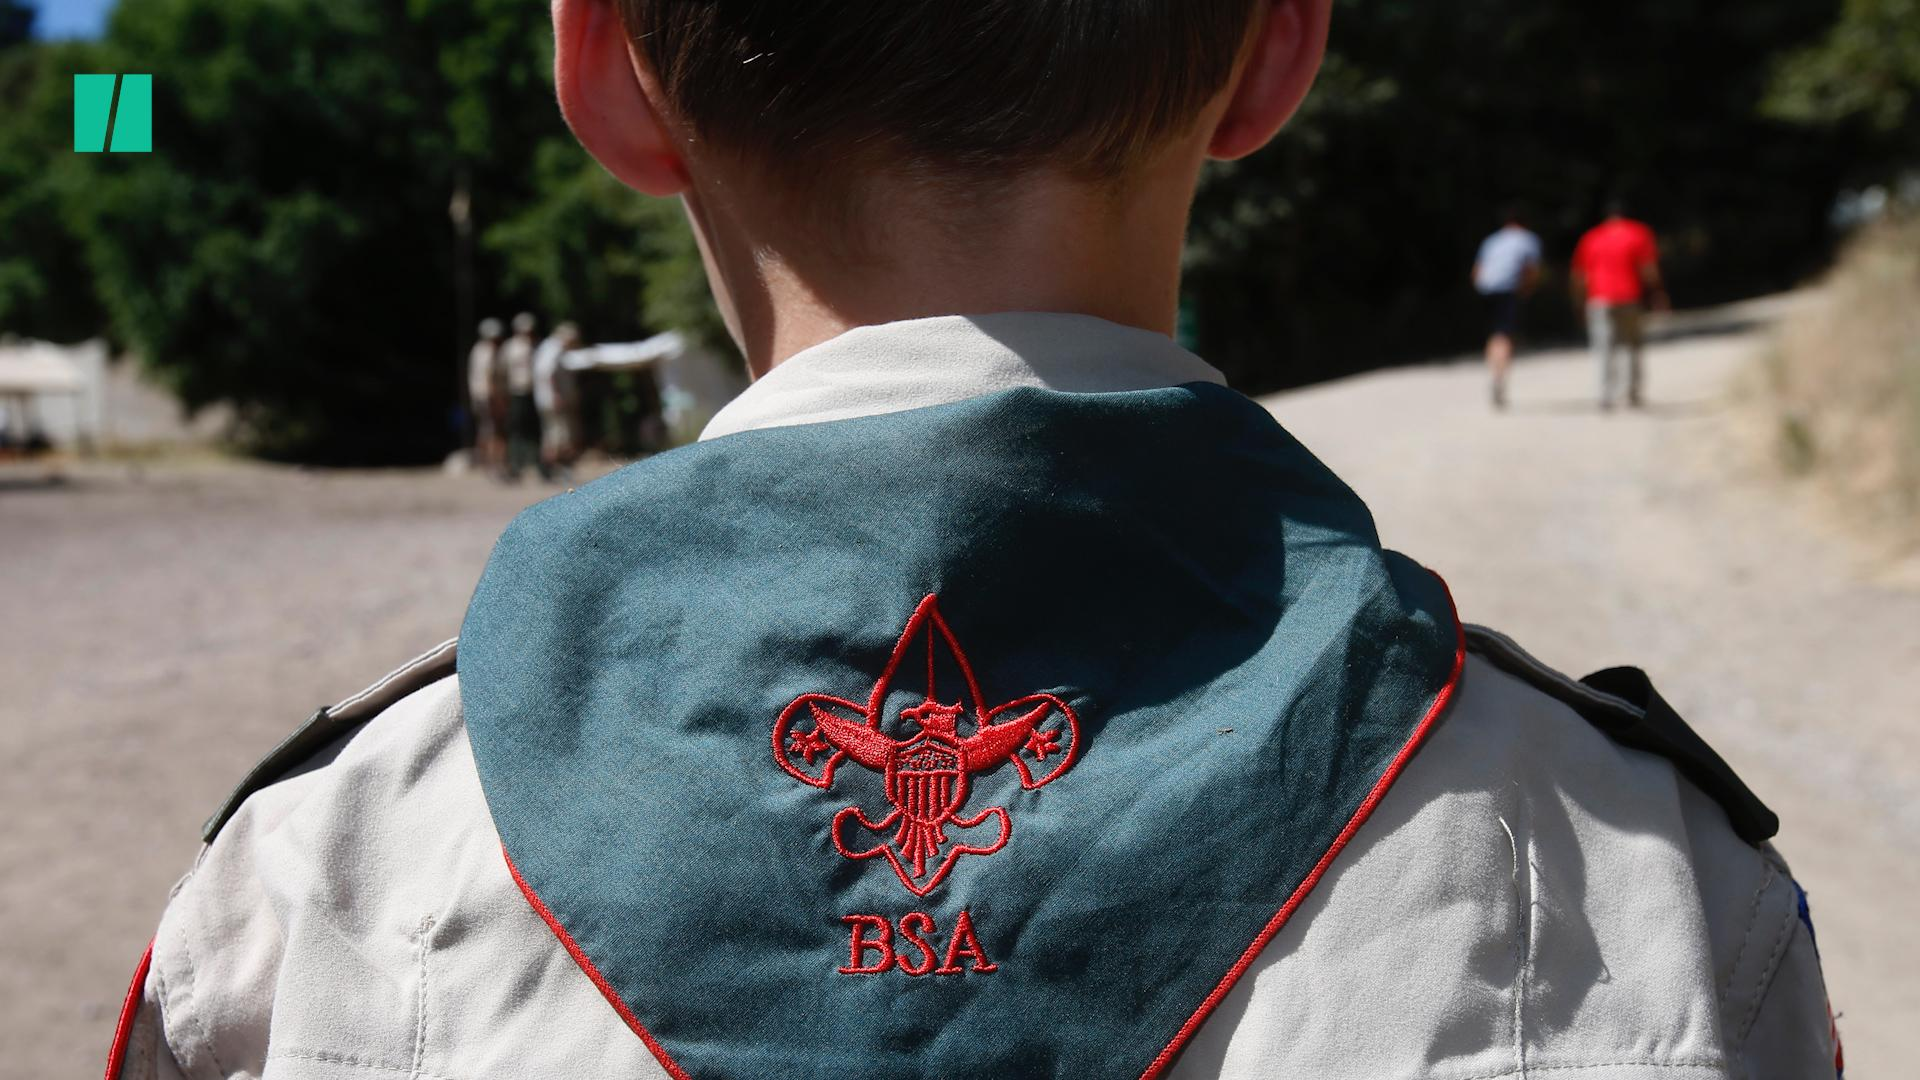 Nearly 8,000 Alleged Child Abusers Identified In Boy Scouts' Files, Review Finds